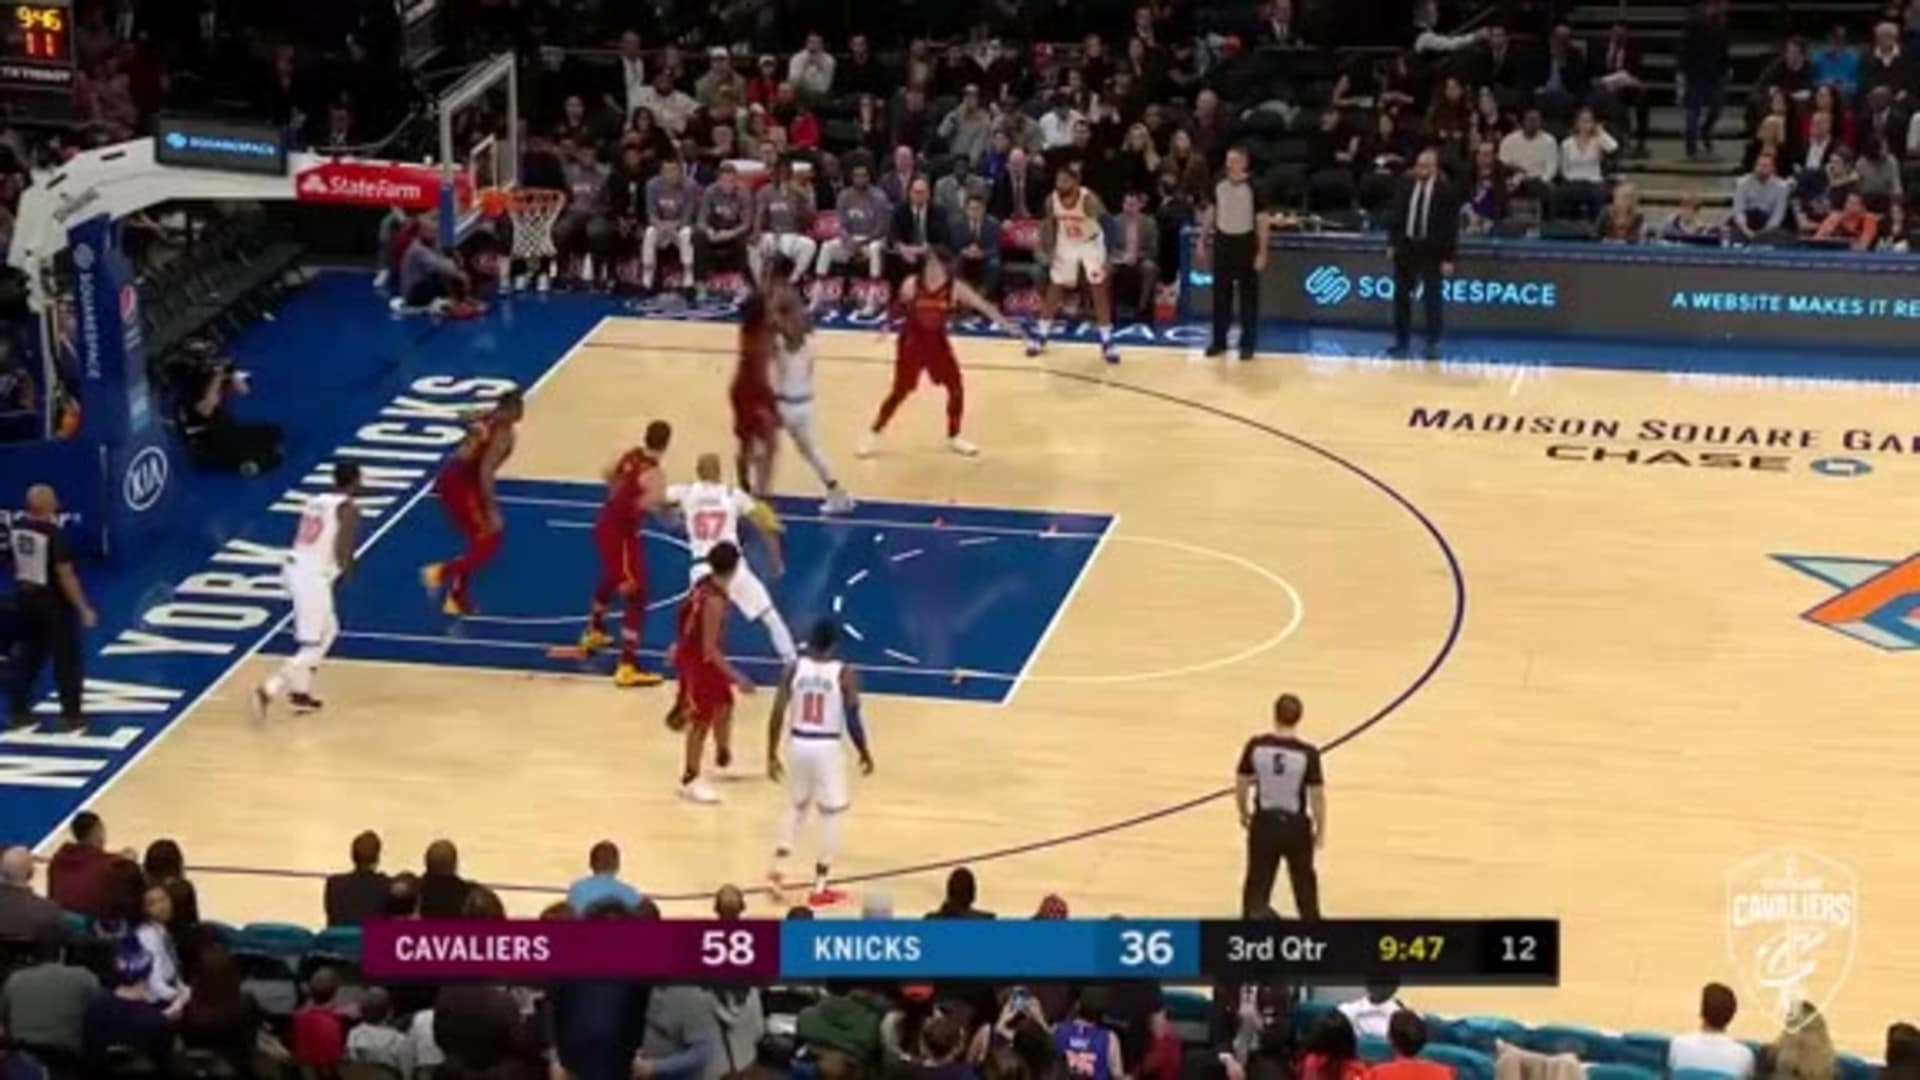 Tristan Thompson with the REJECTION